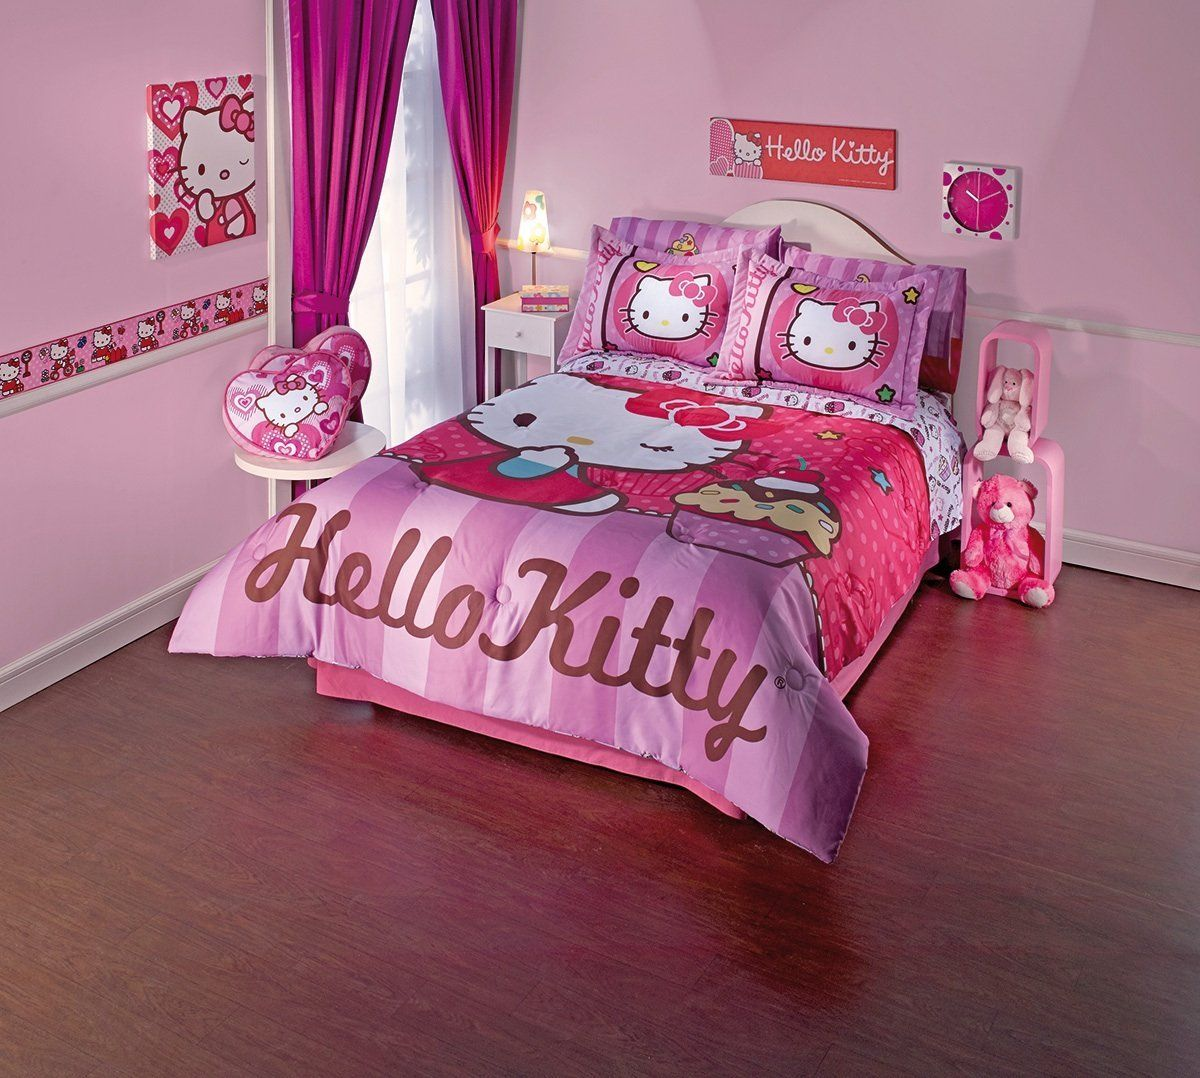 20 Hello Kitty Bedroom Decor Ideas to Make Your Bedroom More Cute. 20 Hello Kitty Bedroom Decor Ideas to Make Your Bedroom More Cute